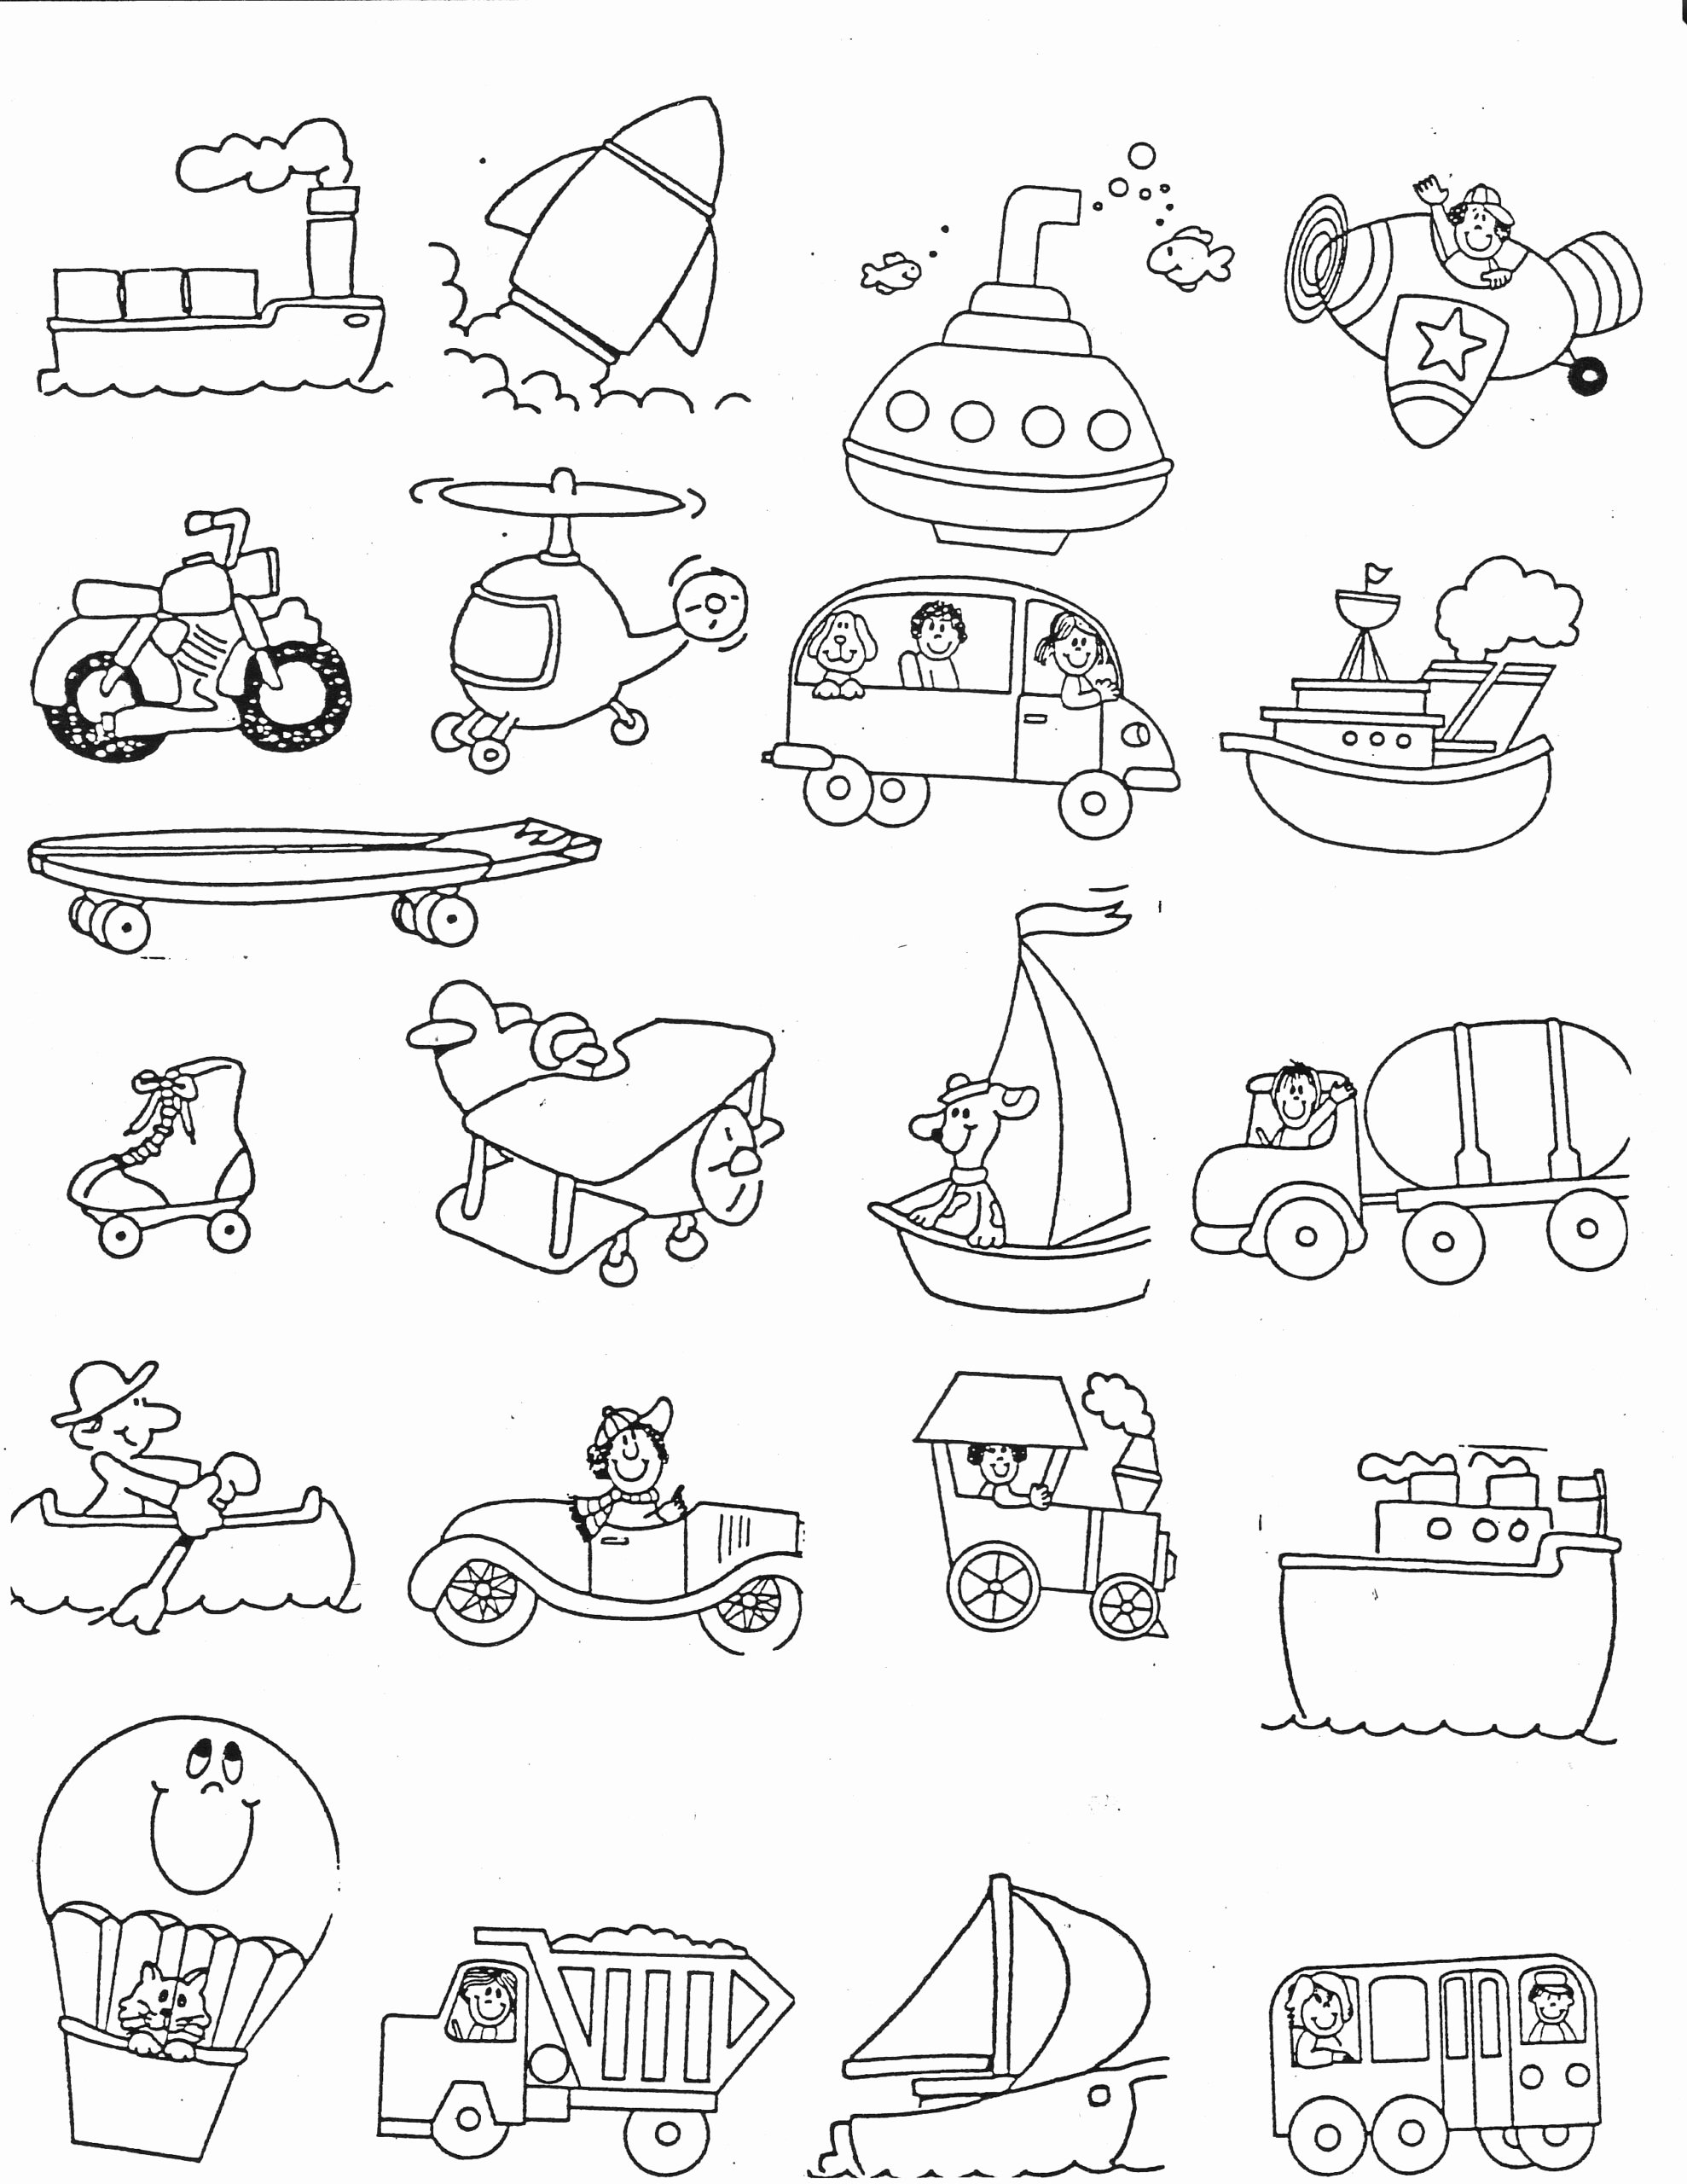 Worksheets for Preschoolers On Transportation Ideas Worksheets Transportation Kindergarten Nana Half Worksheet